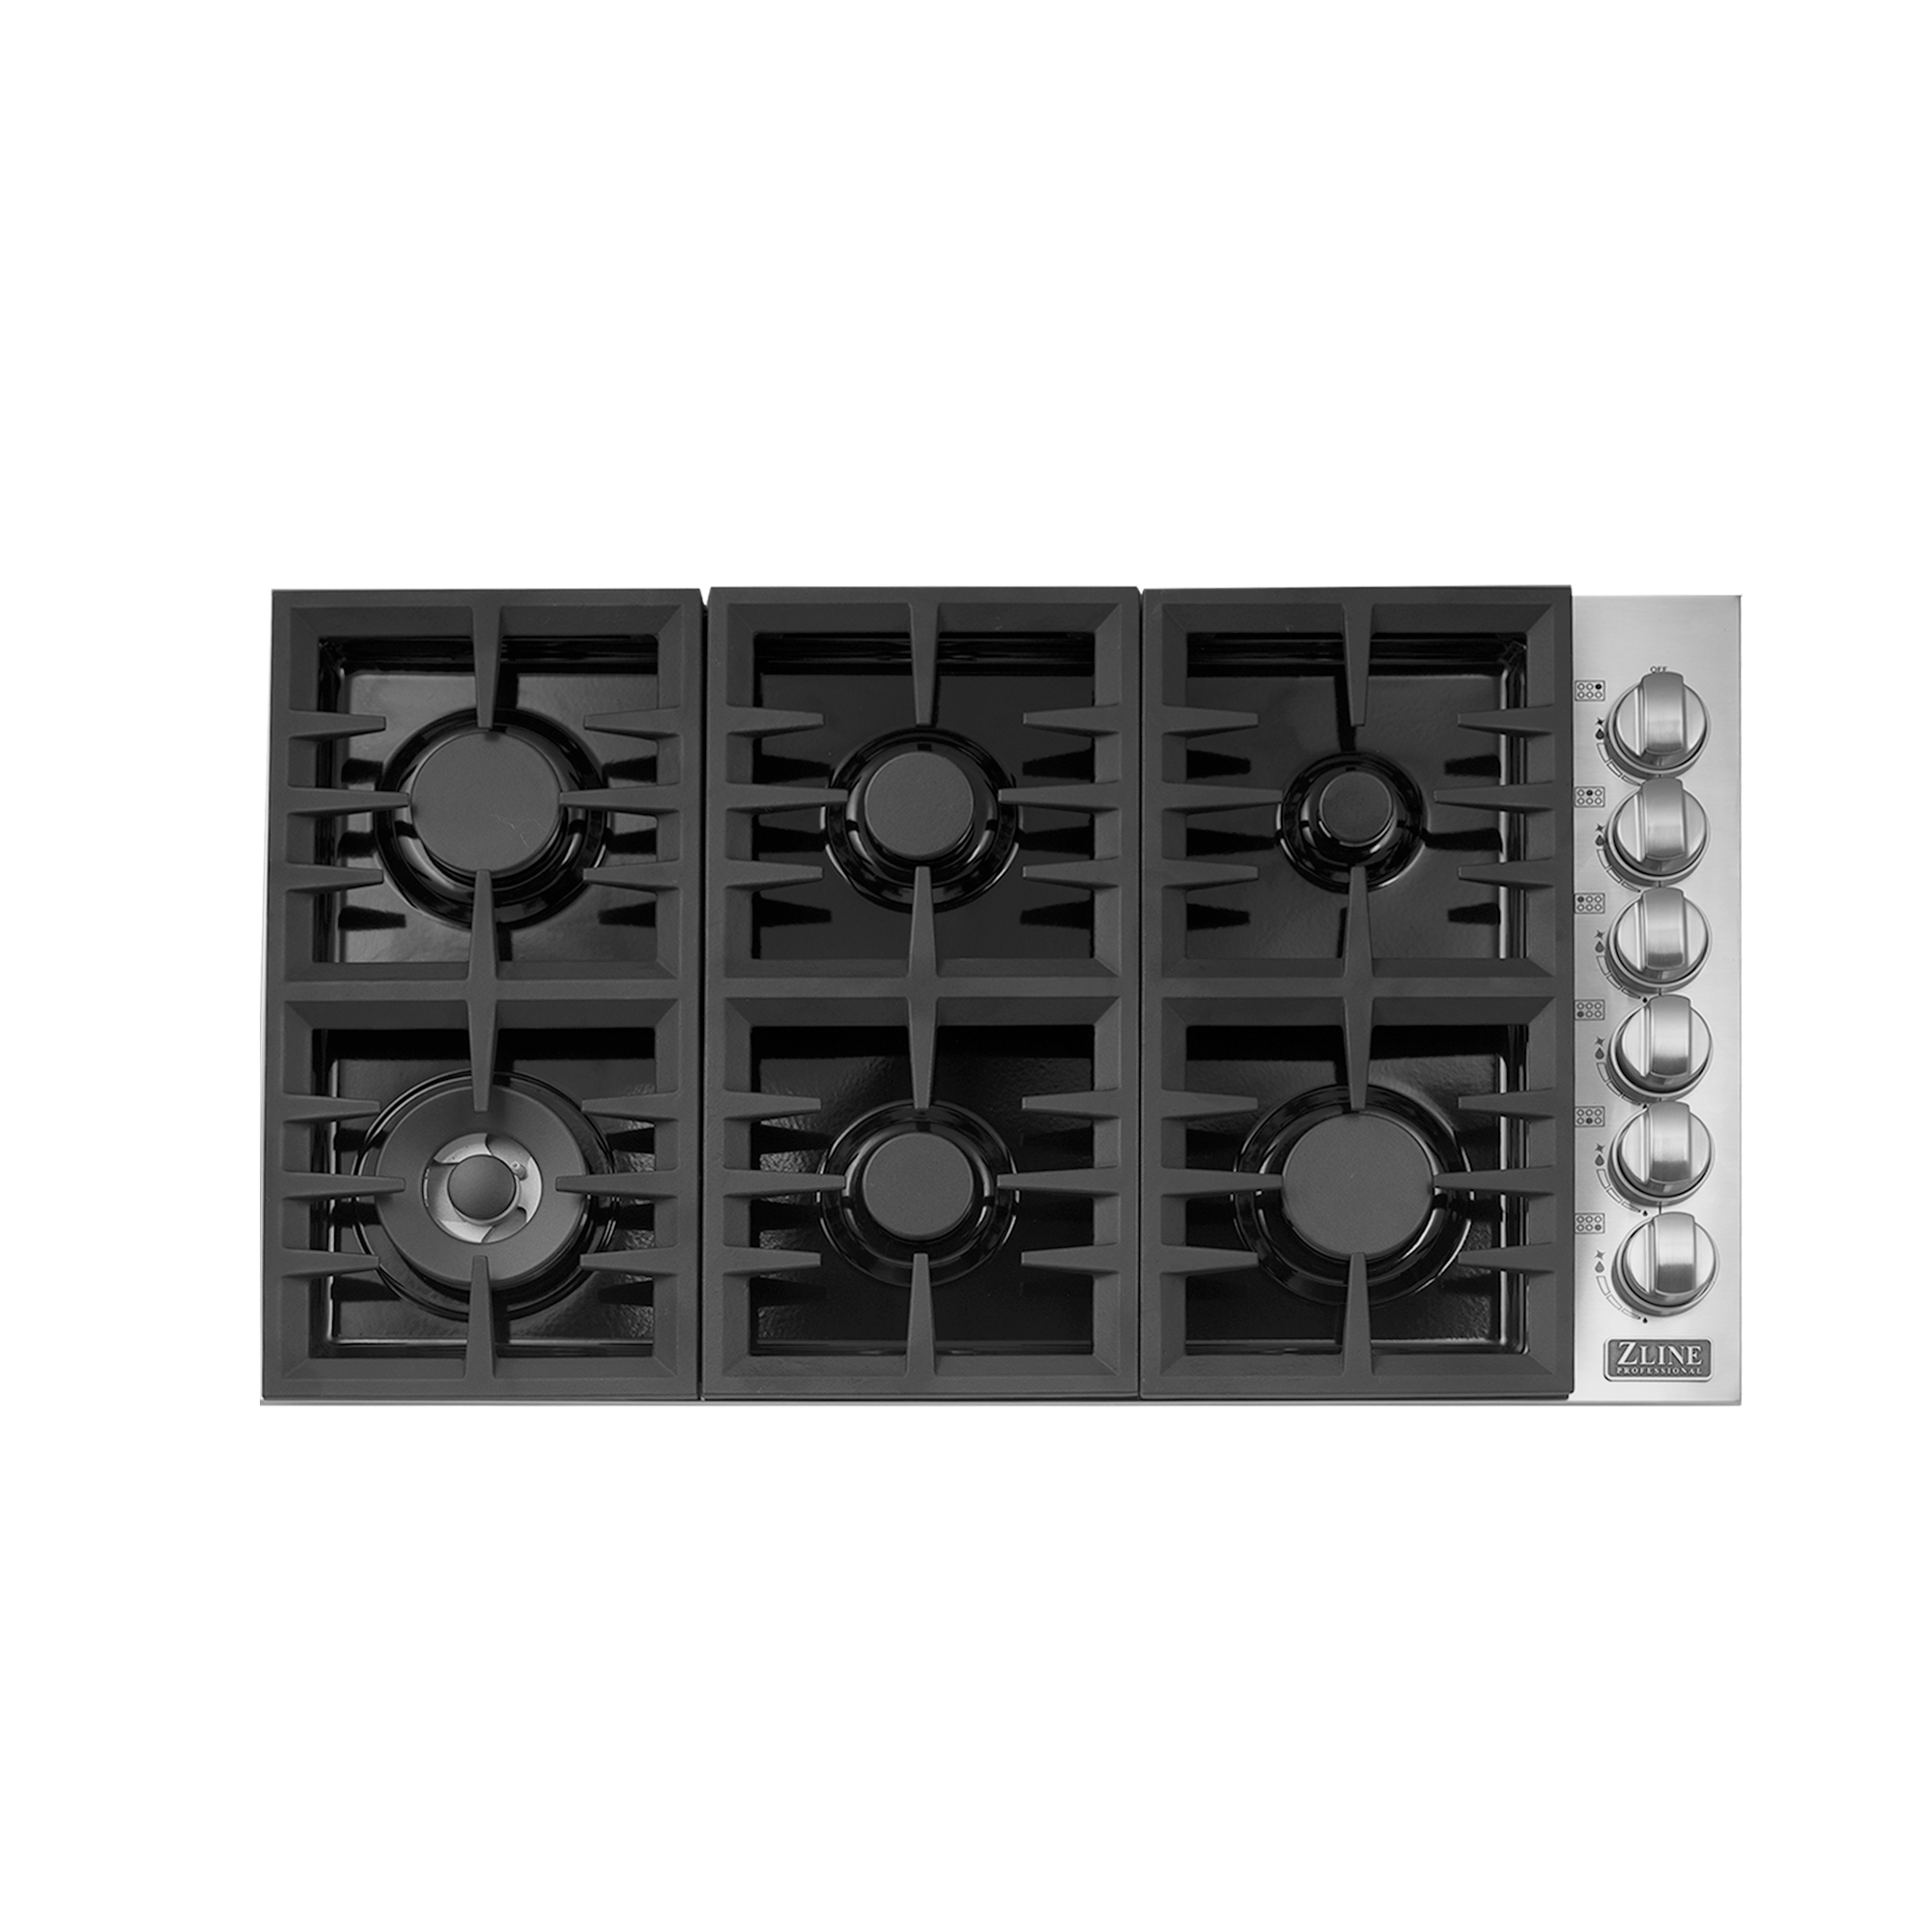 zline-professional-gas-dropin-cooktop-RC36-PBT-Top.jpg